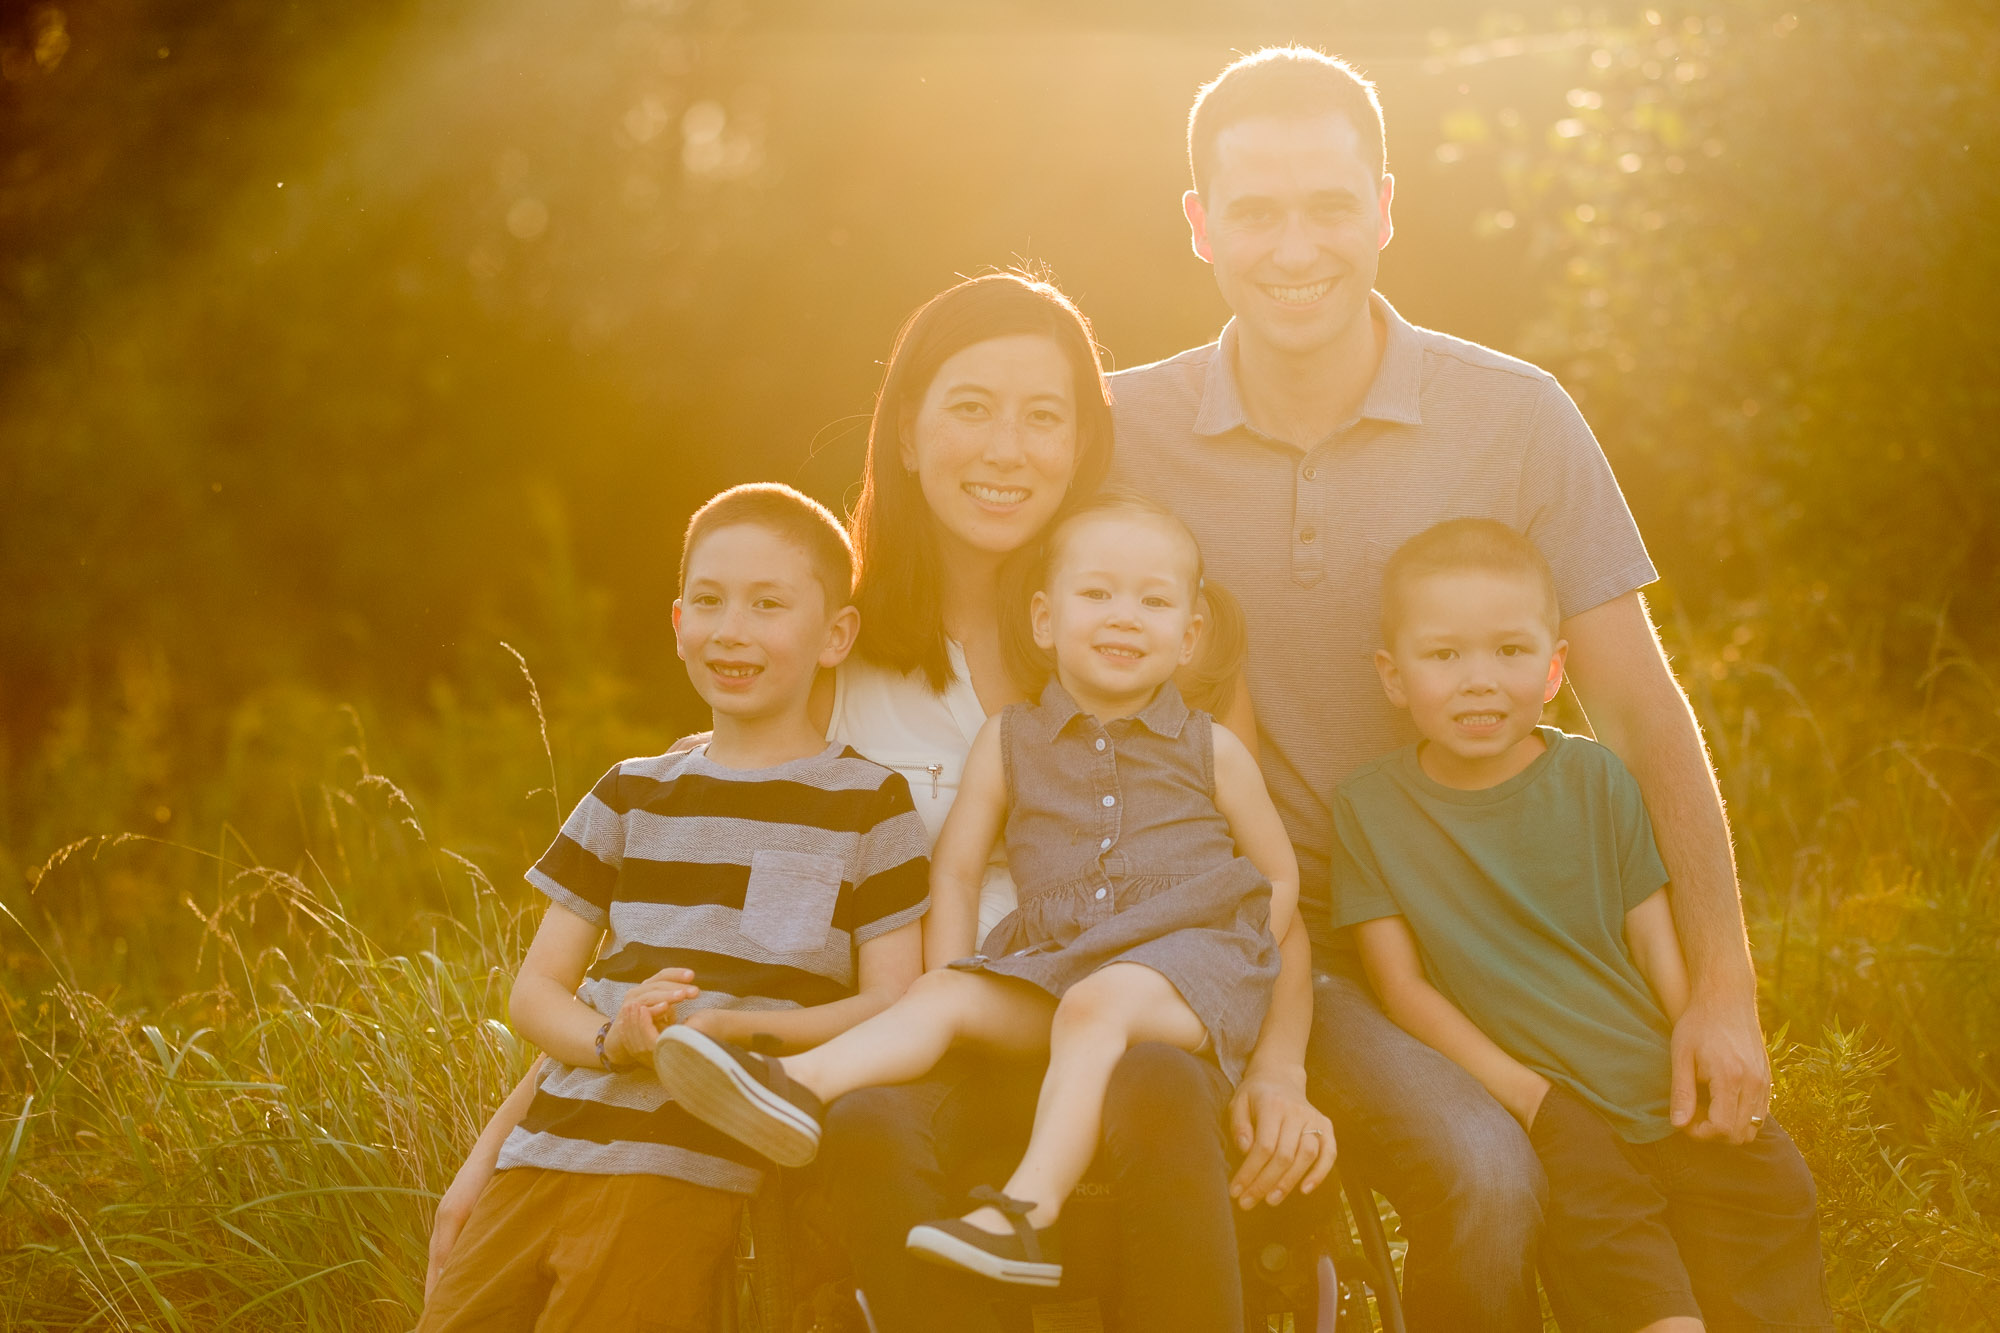 Photographs from a family photography session in Waterloo, Ontario by Scott Williams.